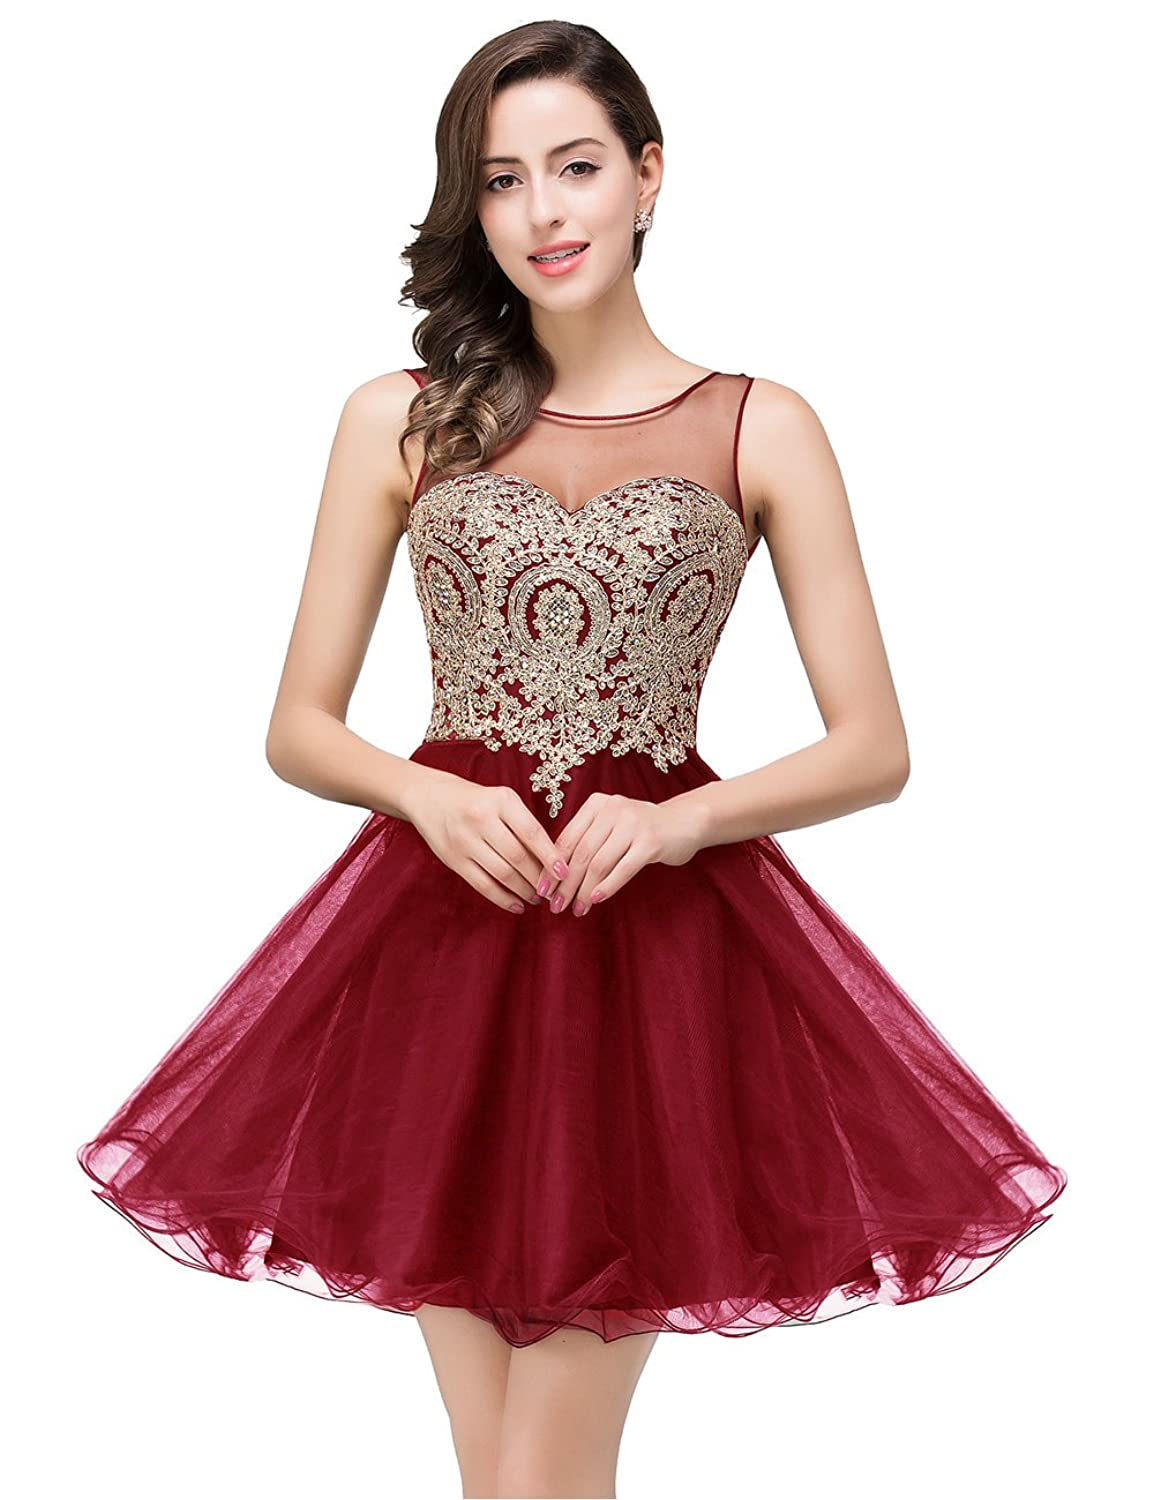 2017 Women's Cocktail Dresses Crystals Applique Short Prom Dresses